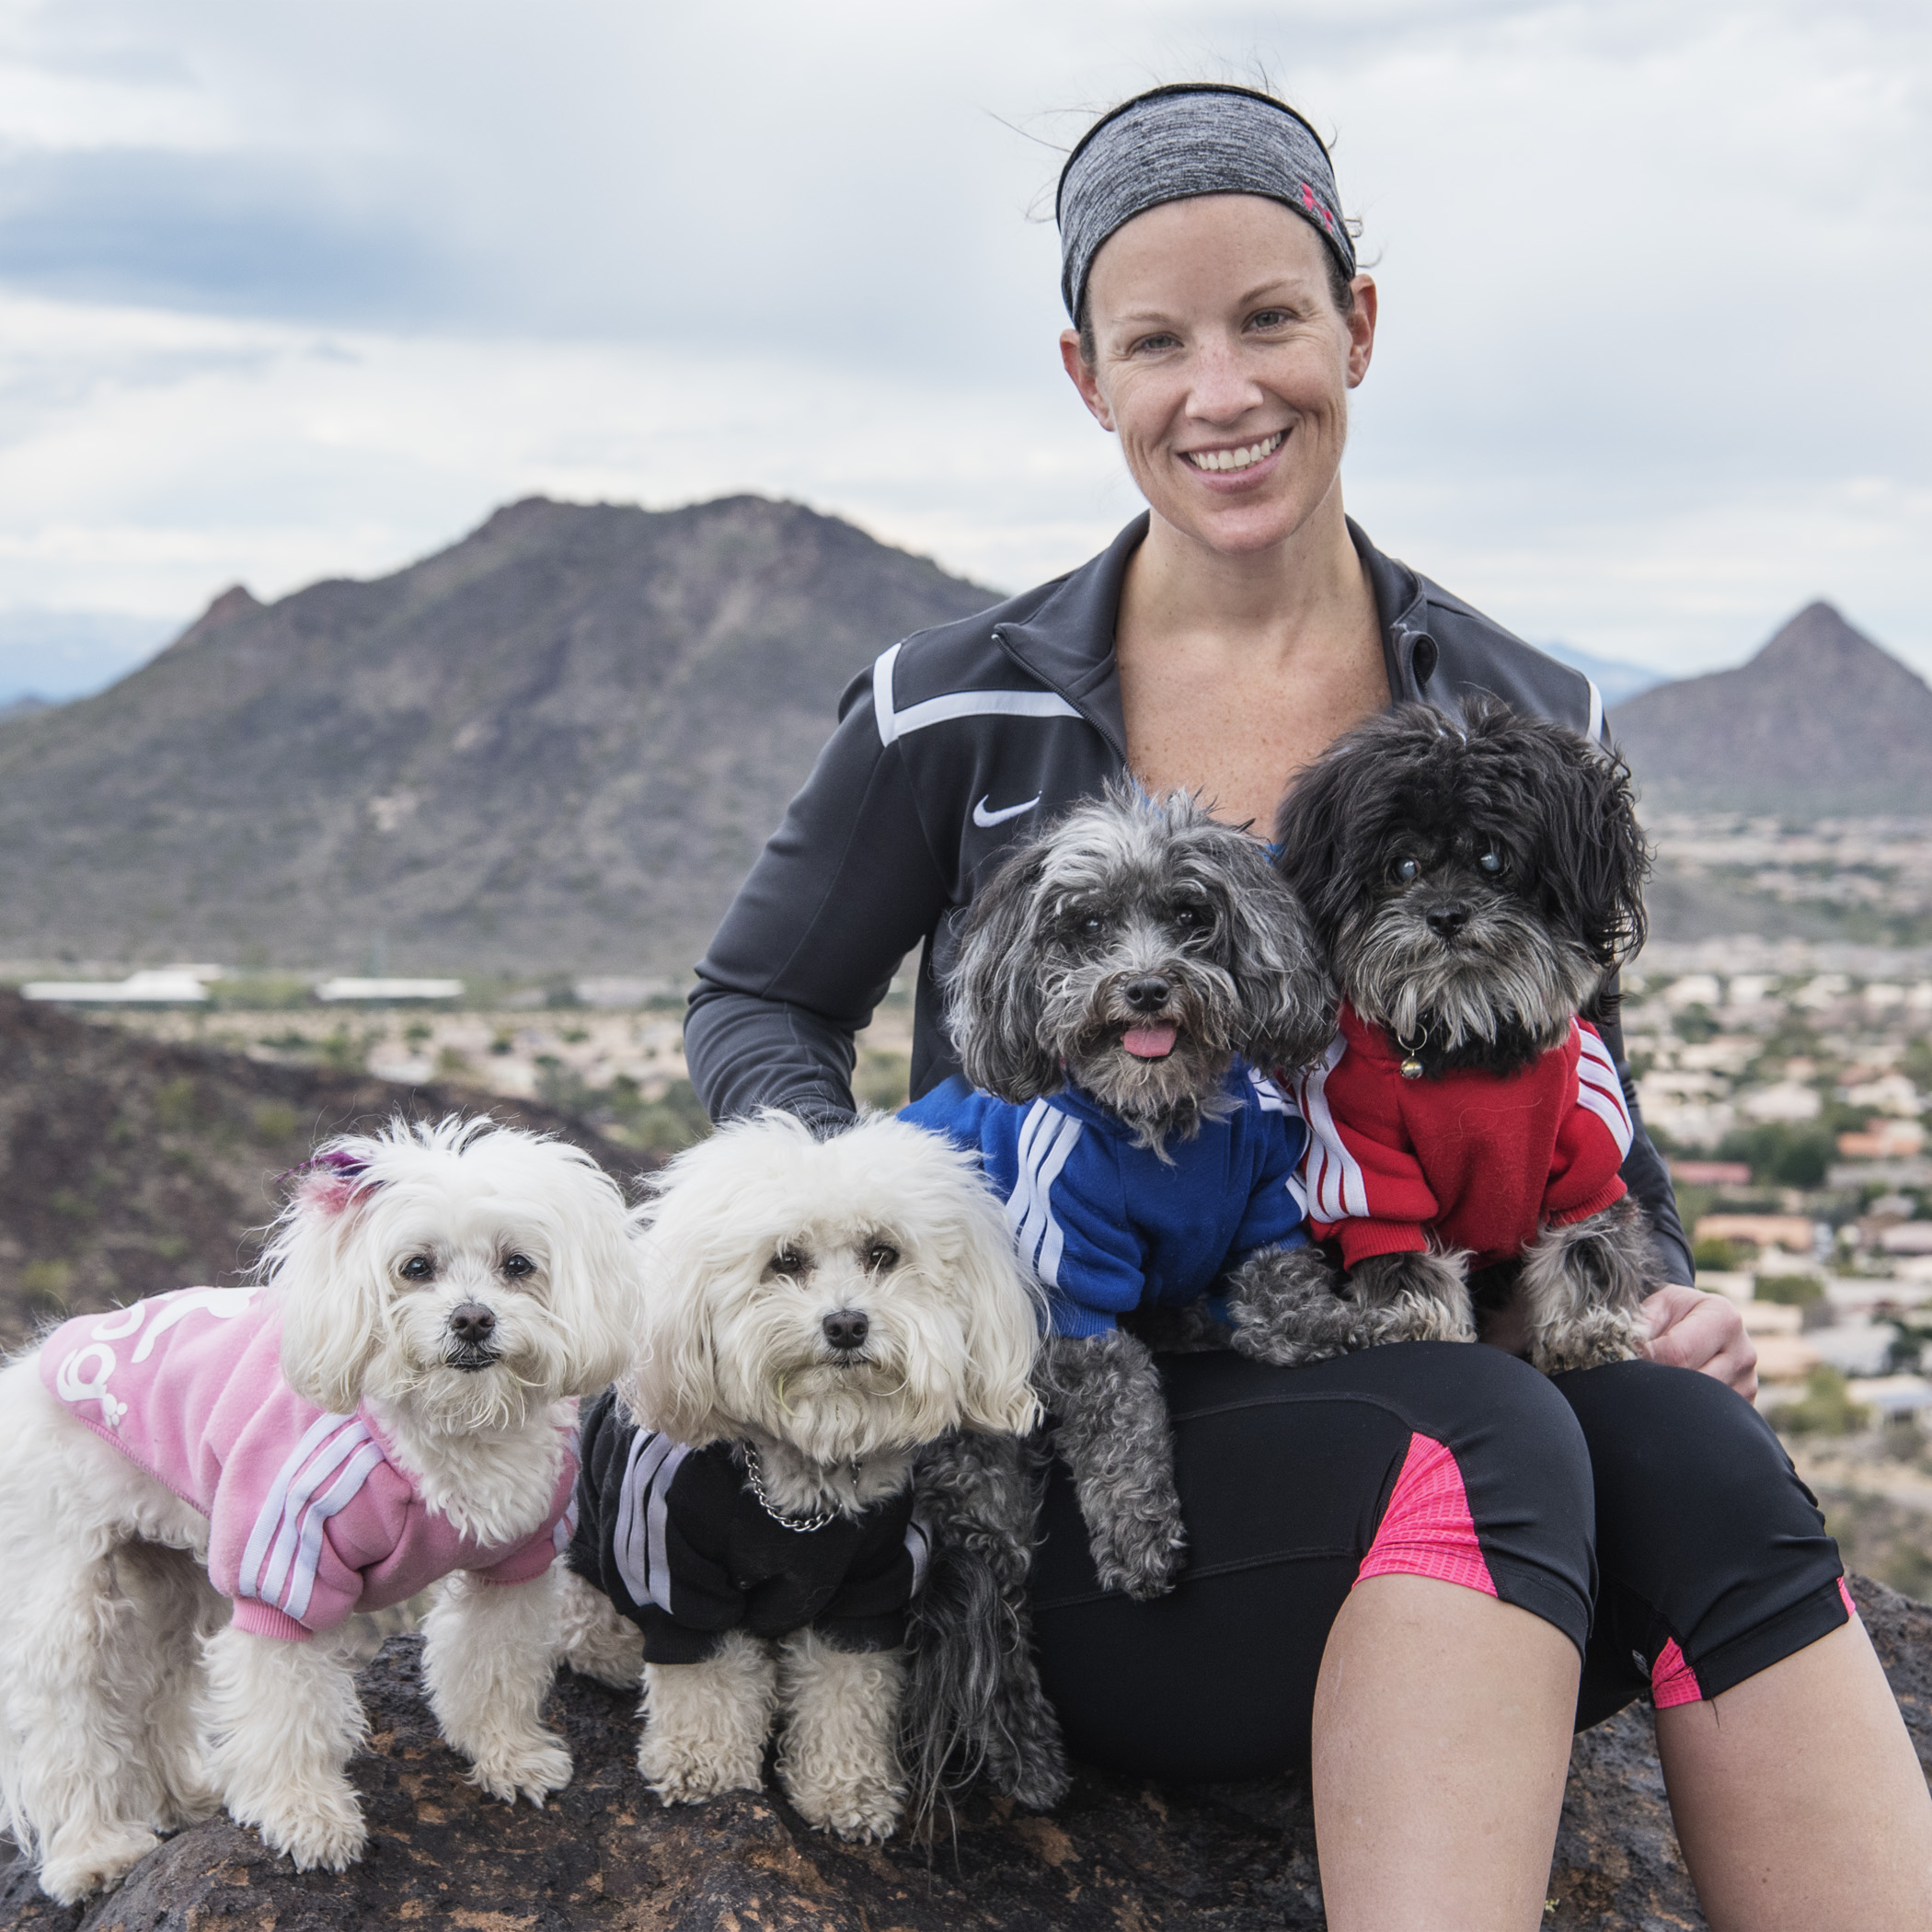 Aunt Lori got in a pre-half marathon workout by climbing Thunderbird Mountain with us! Hope she can still move those legs tomorrow!